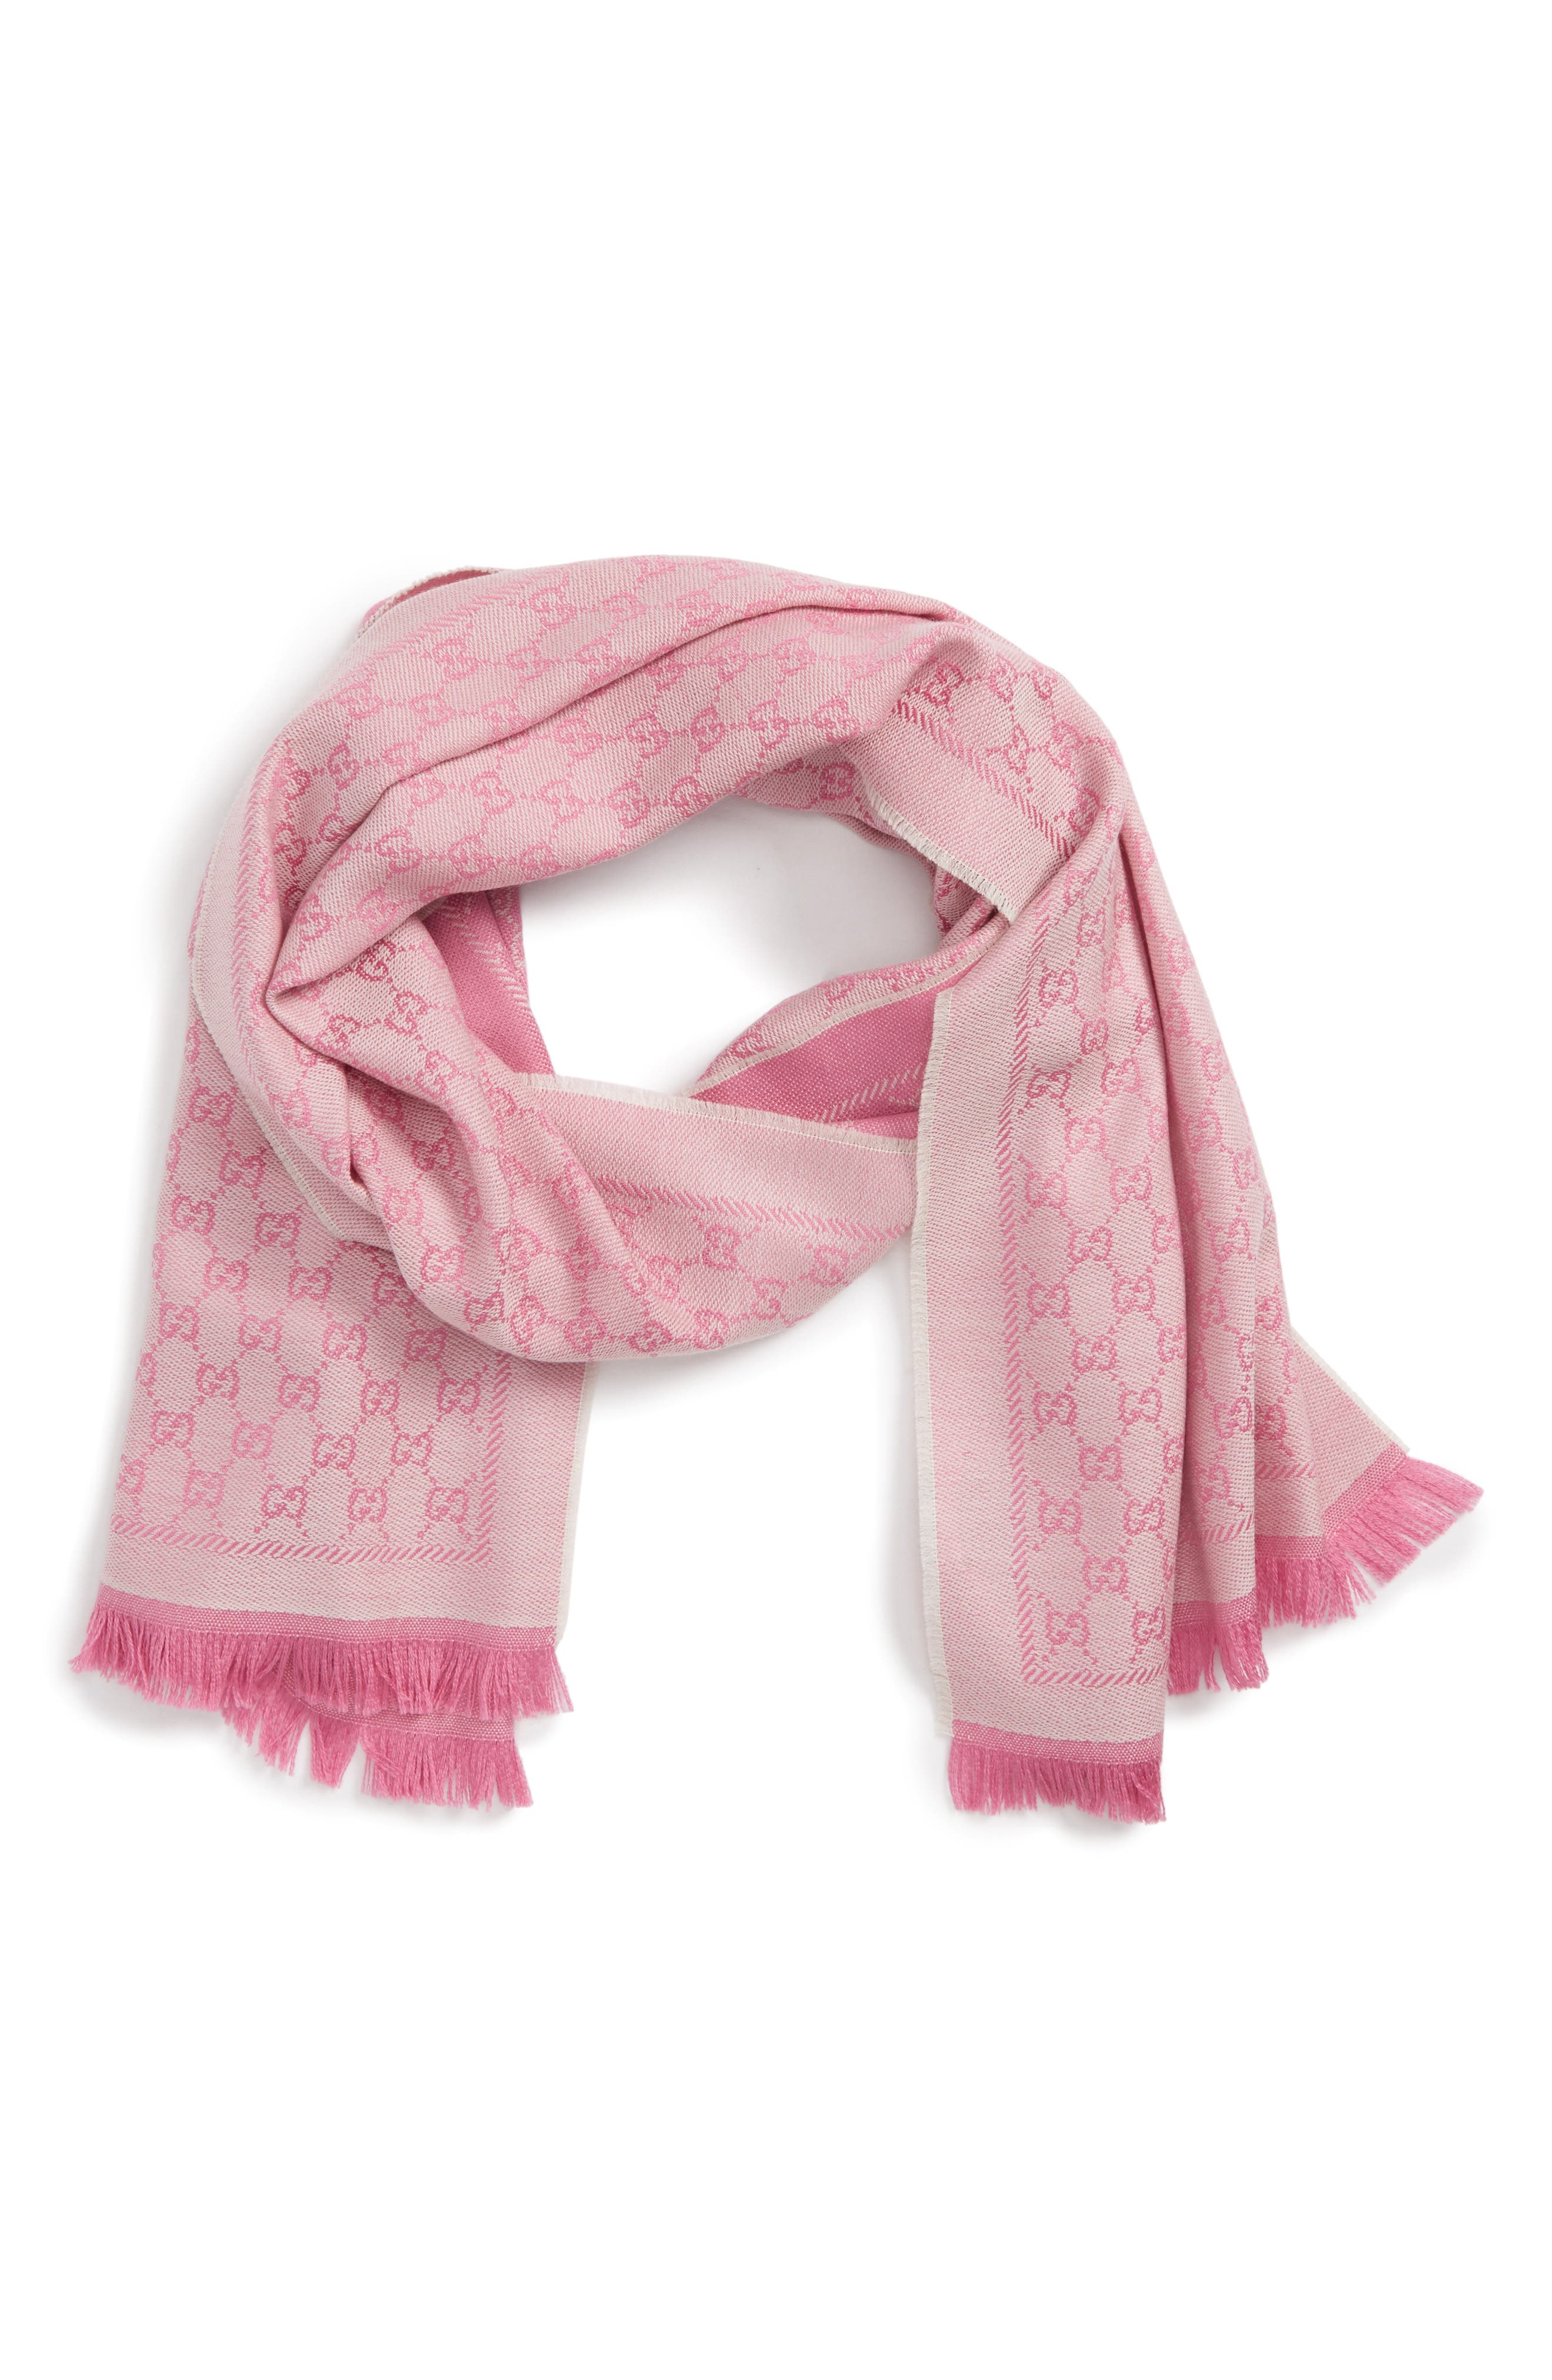 GG Jacquard Wool Scarf,                             Main thumbnail 1, color,                             900